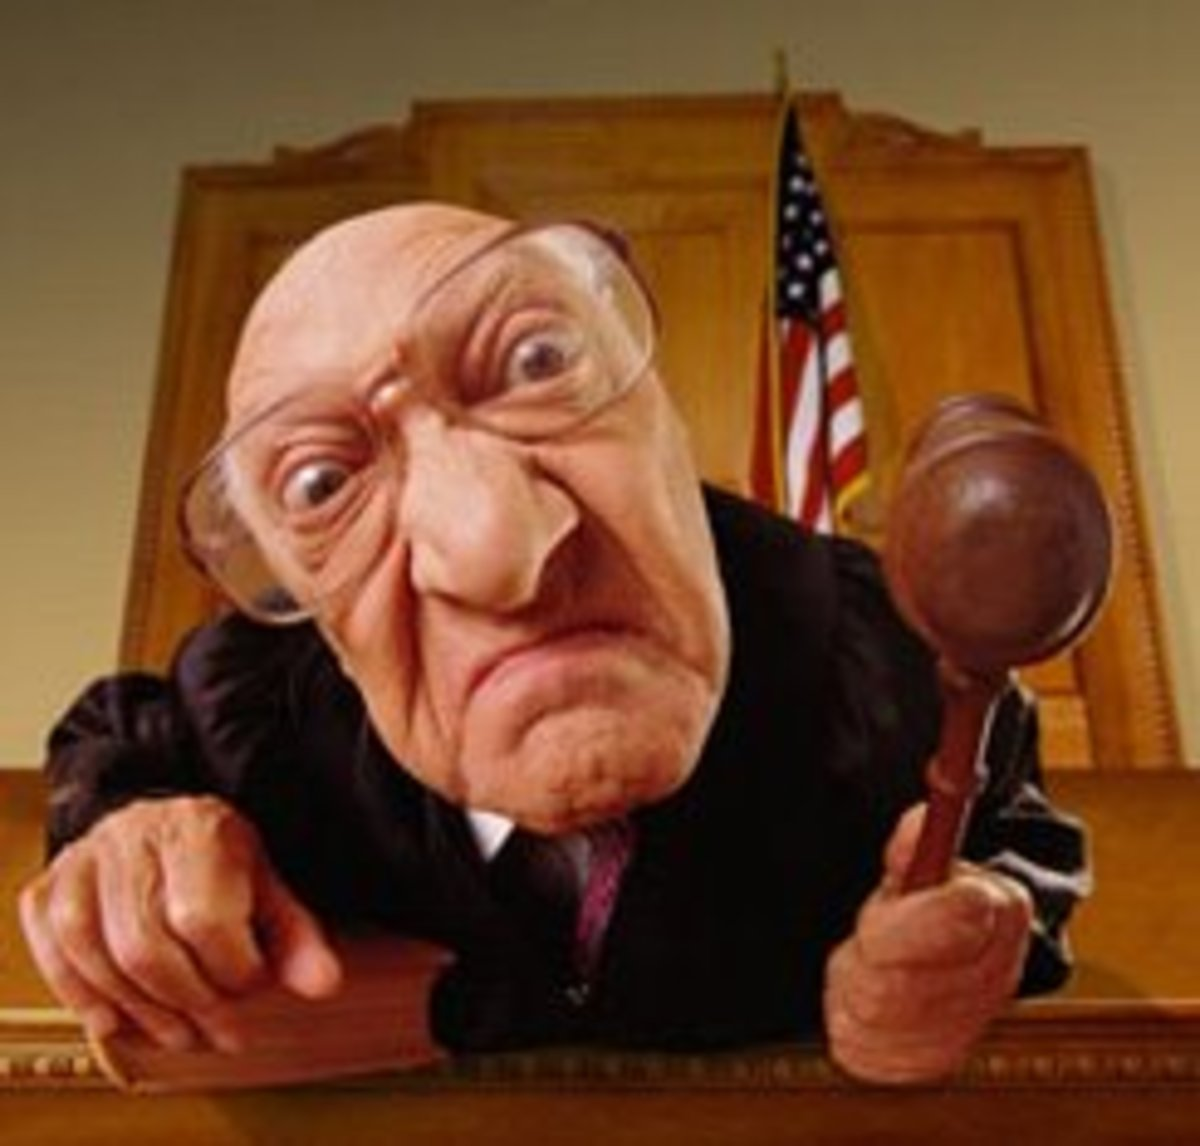 Should I Represent My Self In Court? How Do I Prepare For My Case? Can I Defend Myself In A Court Case?